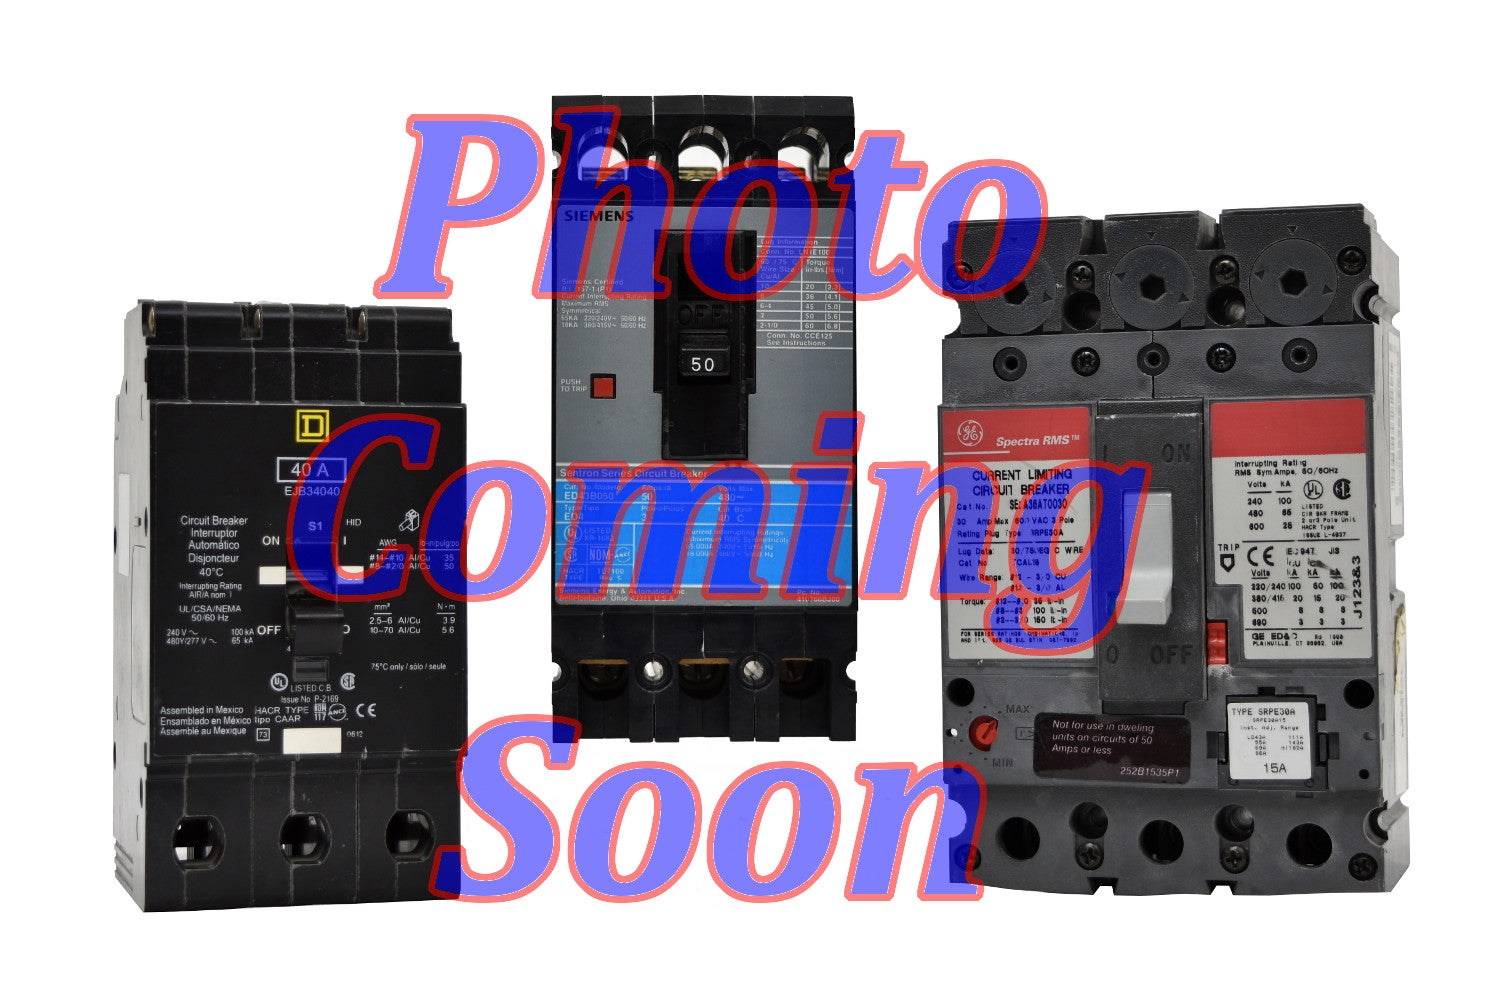 General Electric FCV326TE035R1 Circuit Breakers